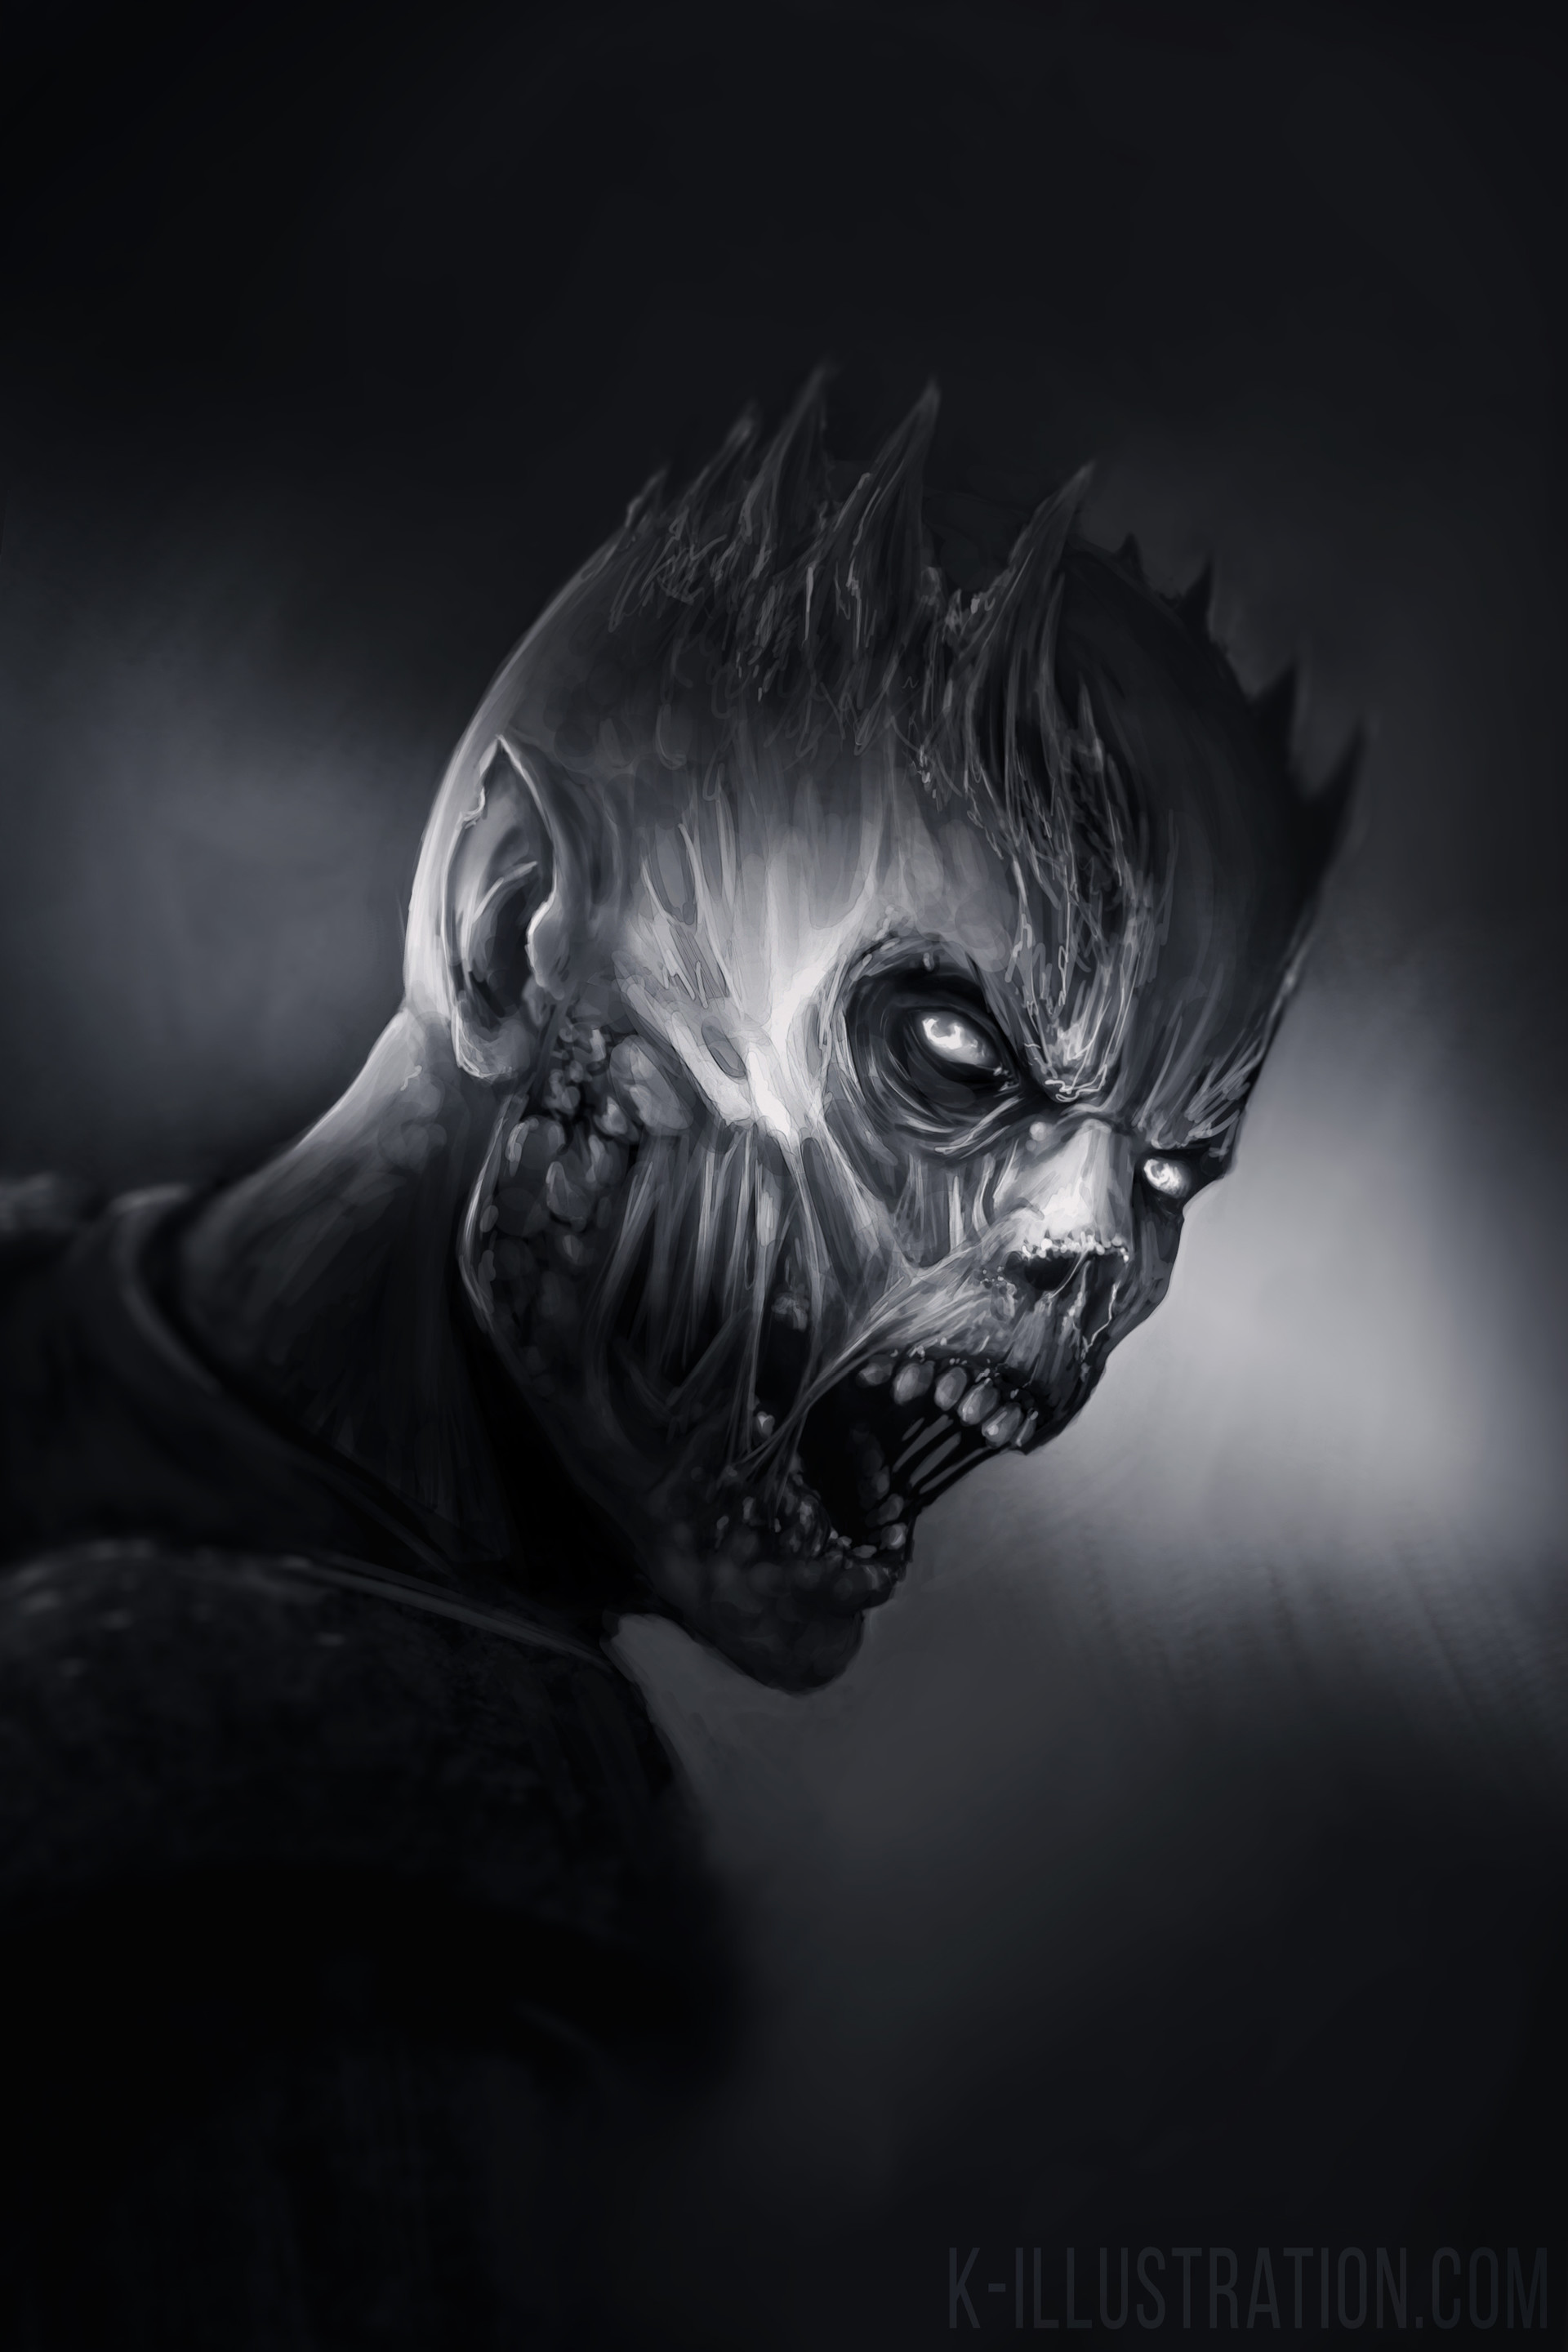 Kevin leiss night king 9